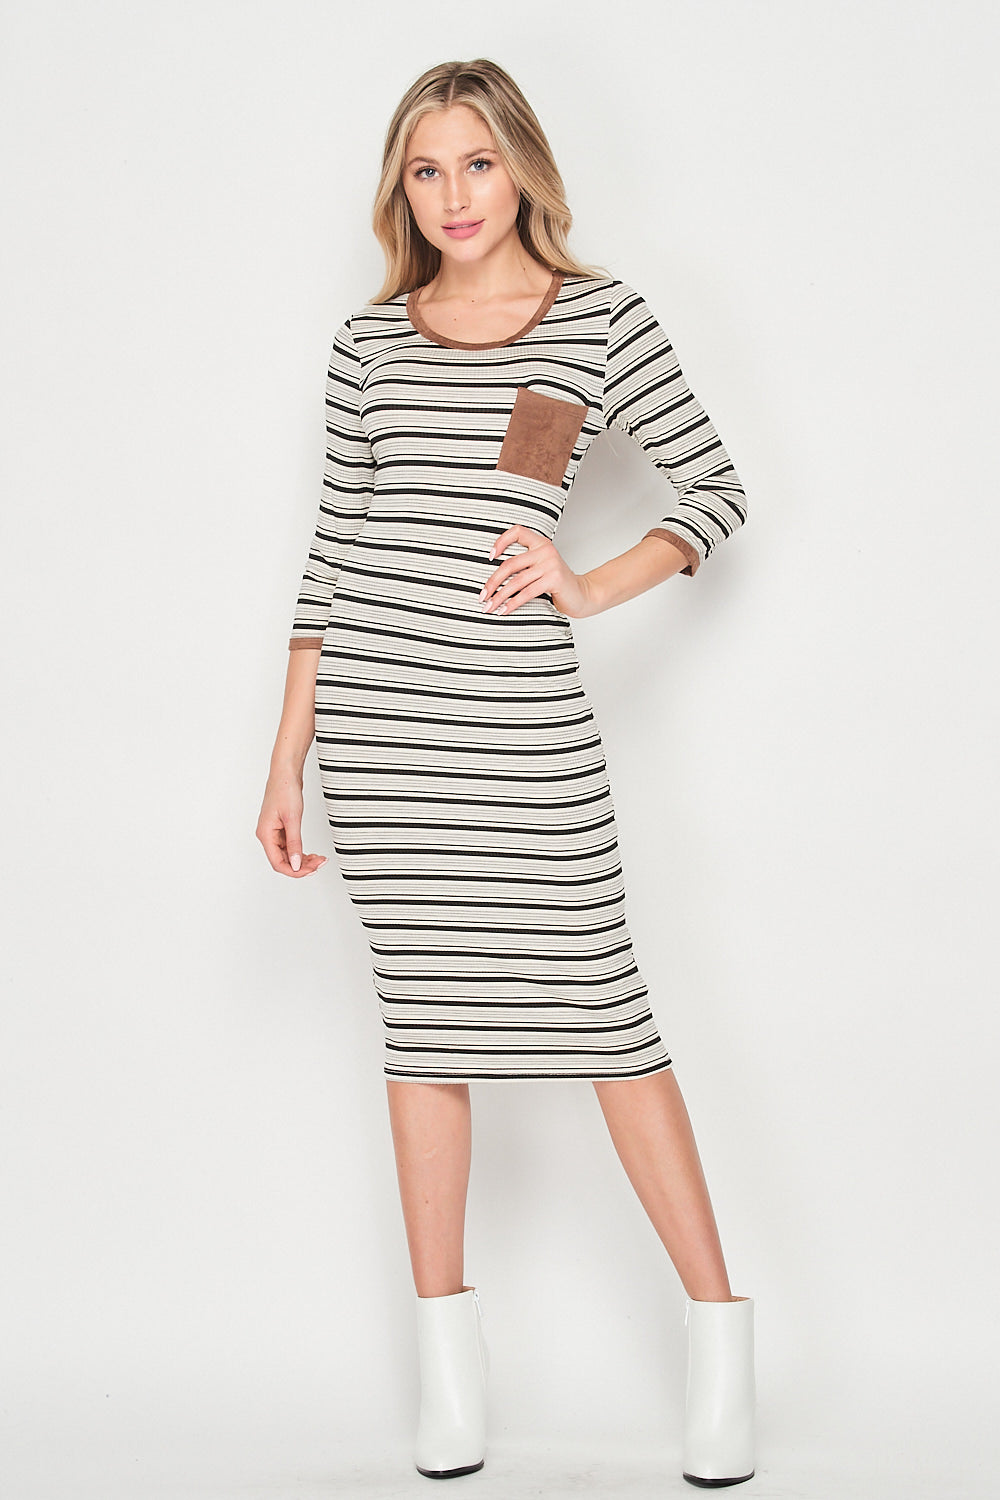 Blank Lewks | Serena Stripe Knit Body con Knit Dress | Brown